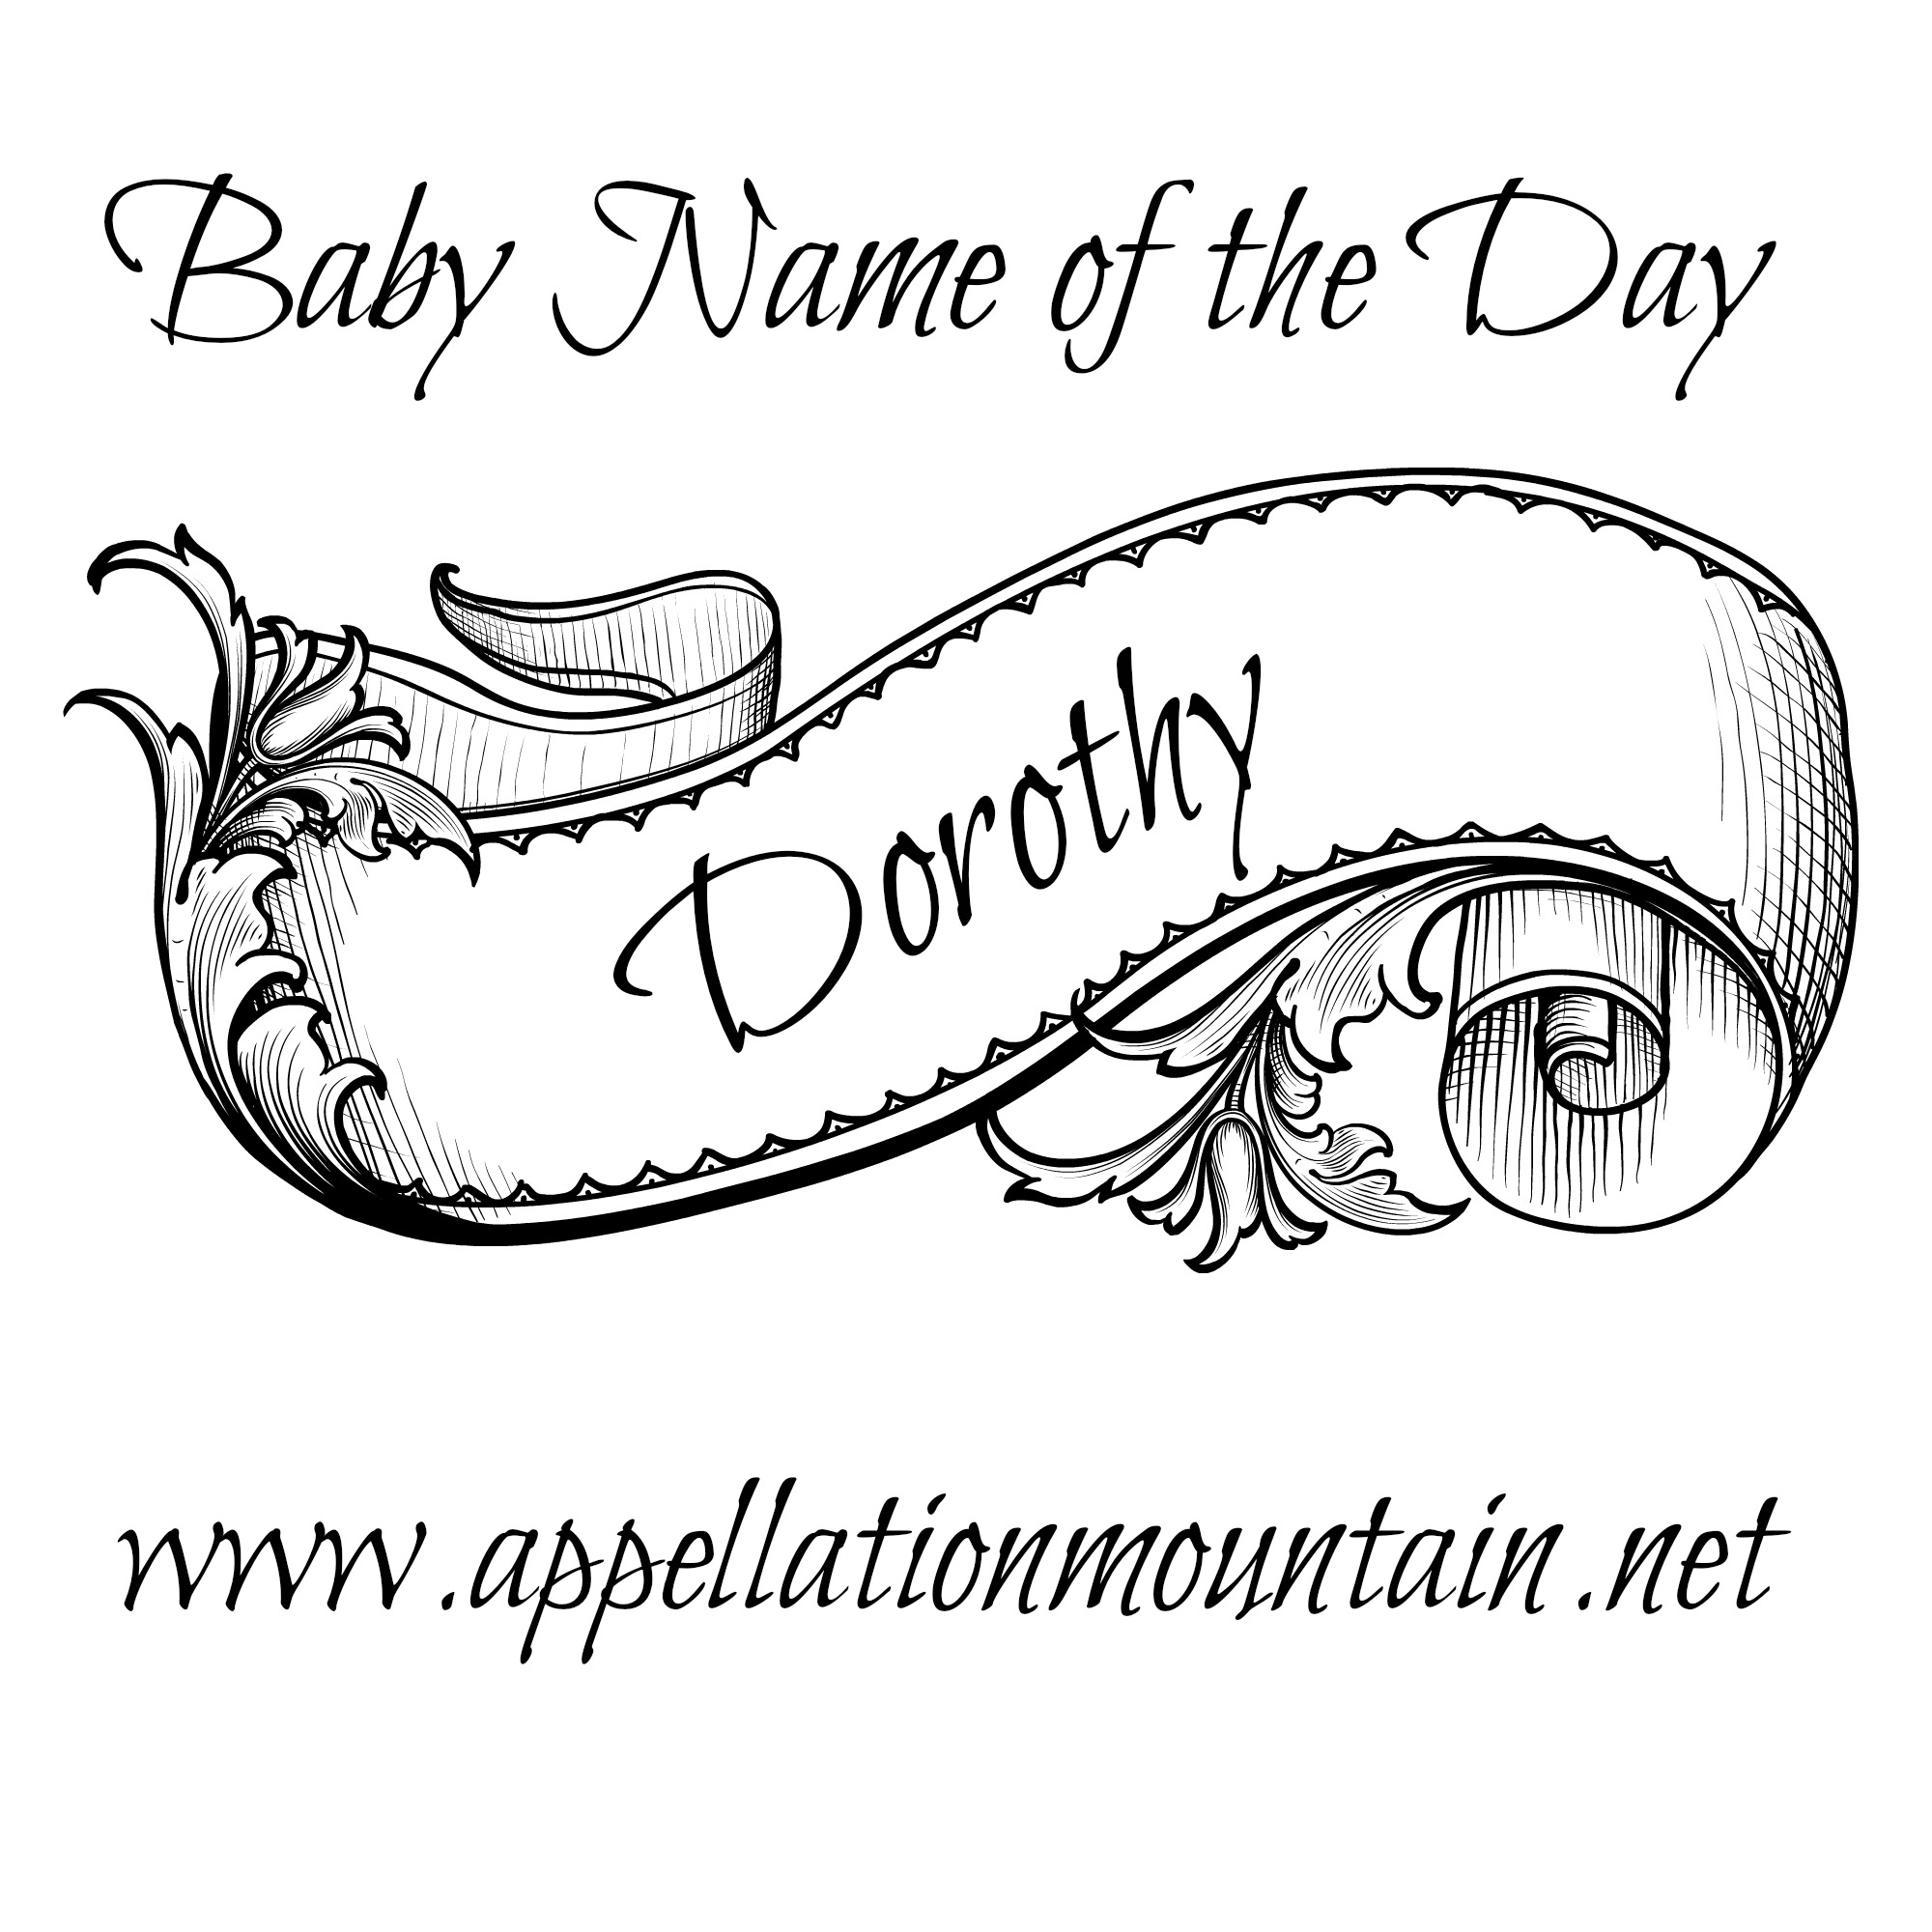 cecily baby name of the day appellation mountain Cicely Tyson 1960 dorothy baby name of the day